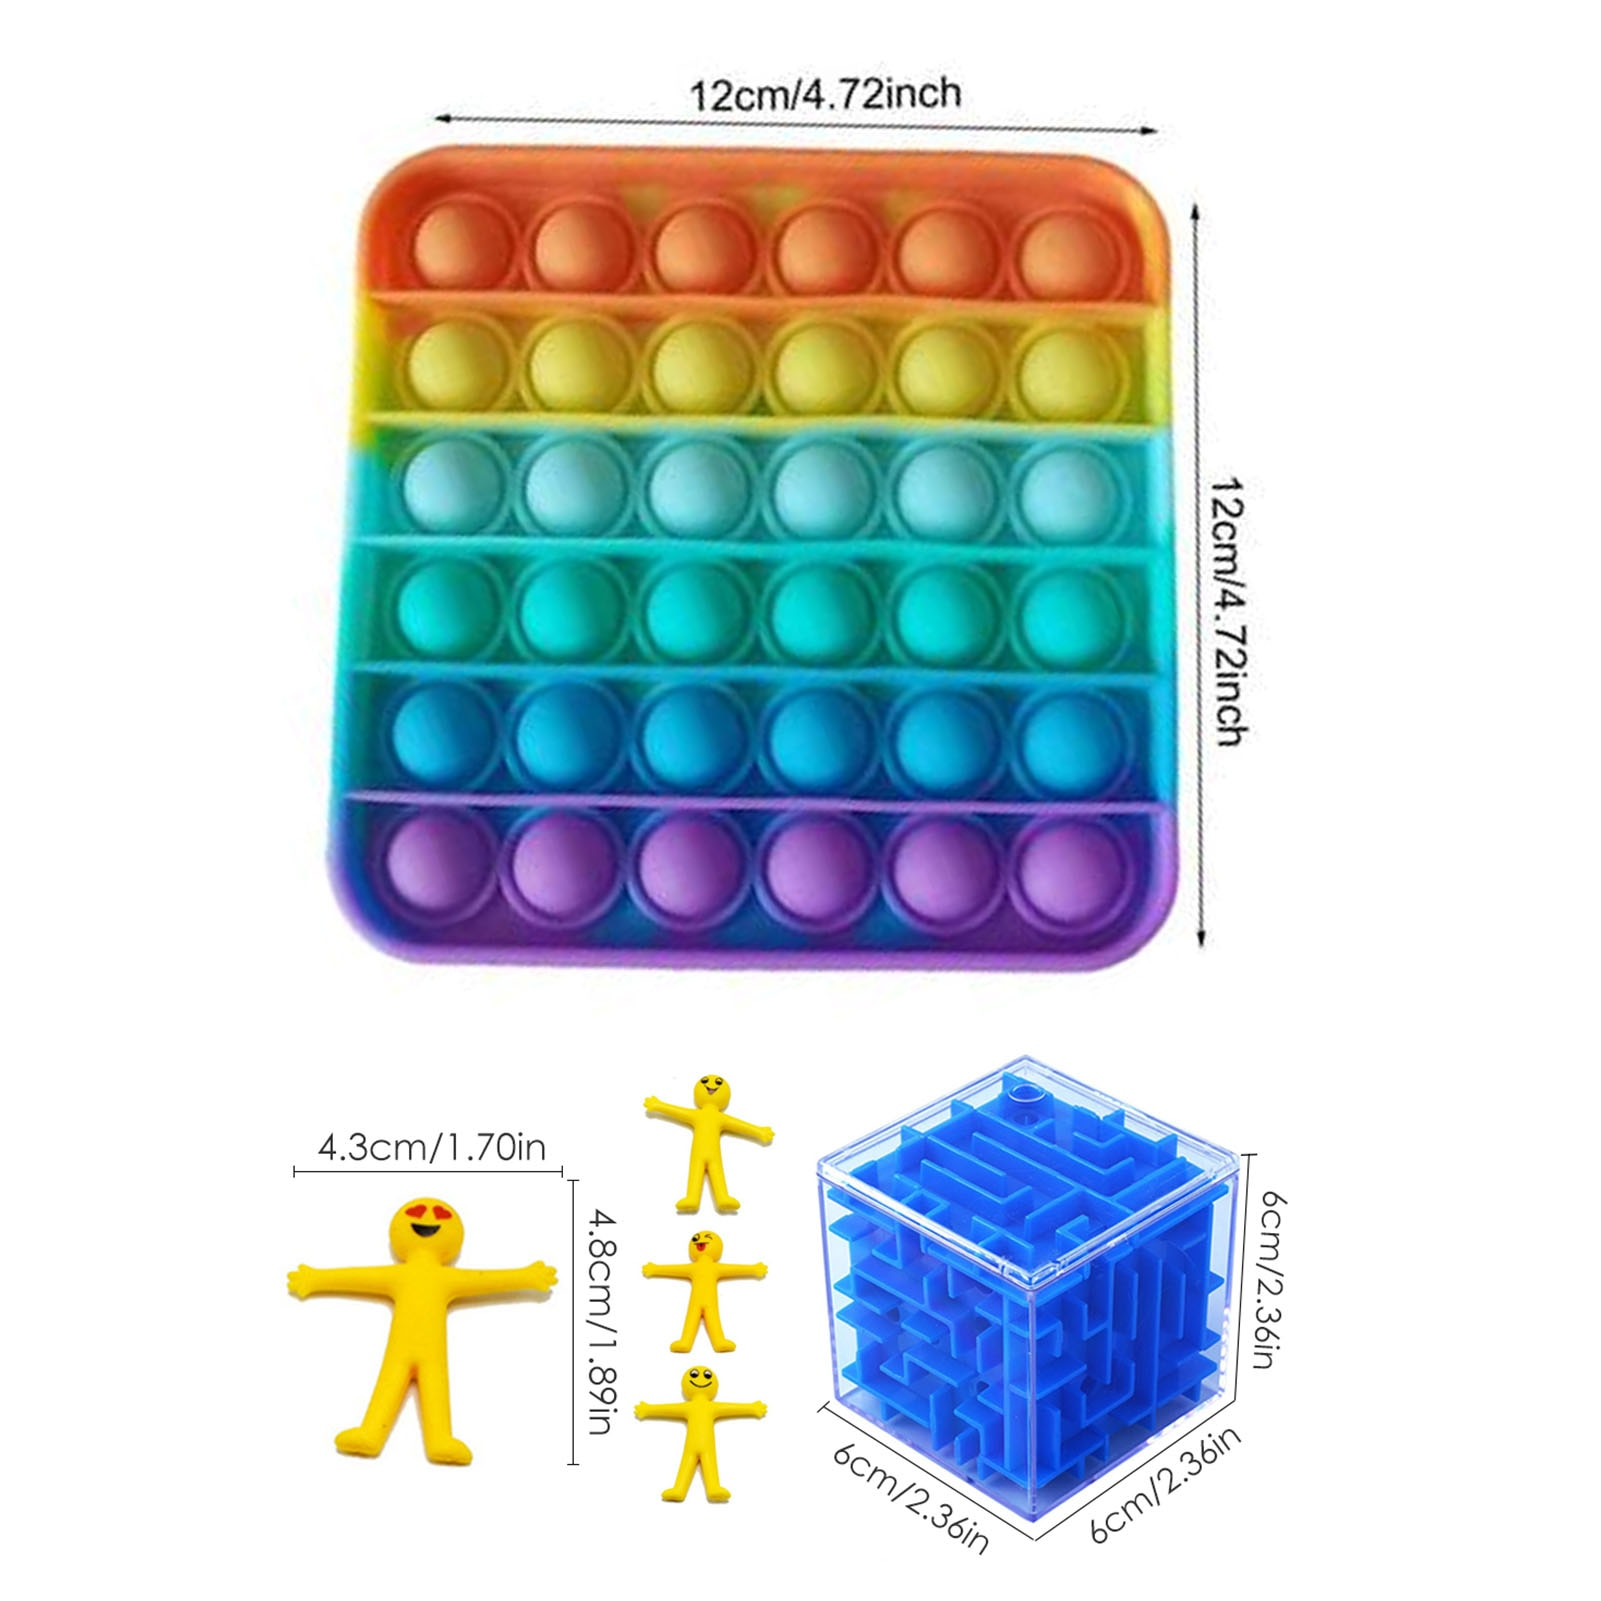 24PCS Sensory Fidget Toy Silicone Stress Relief Anti-Anxiety Toy Anti-stress For Children Adult Dimple Fidget Toy enlarge